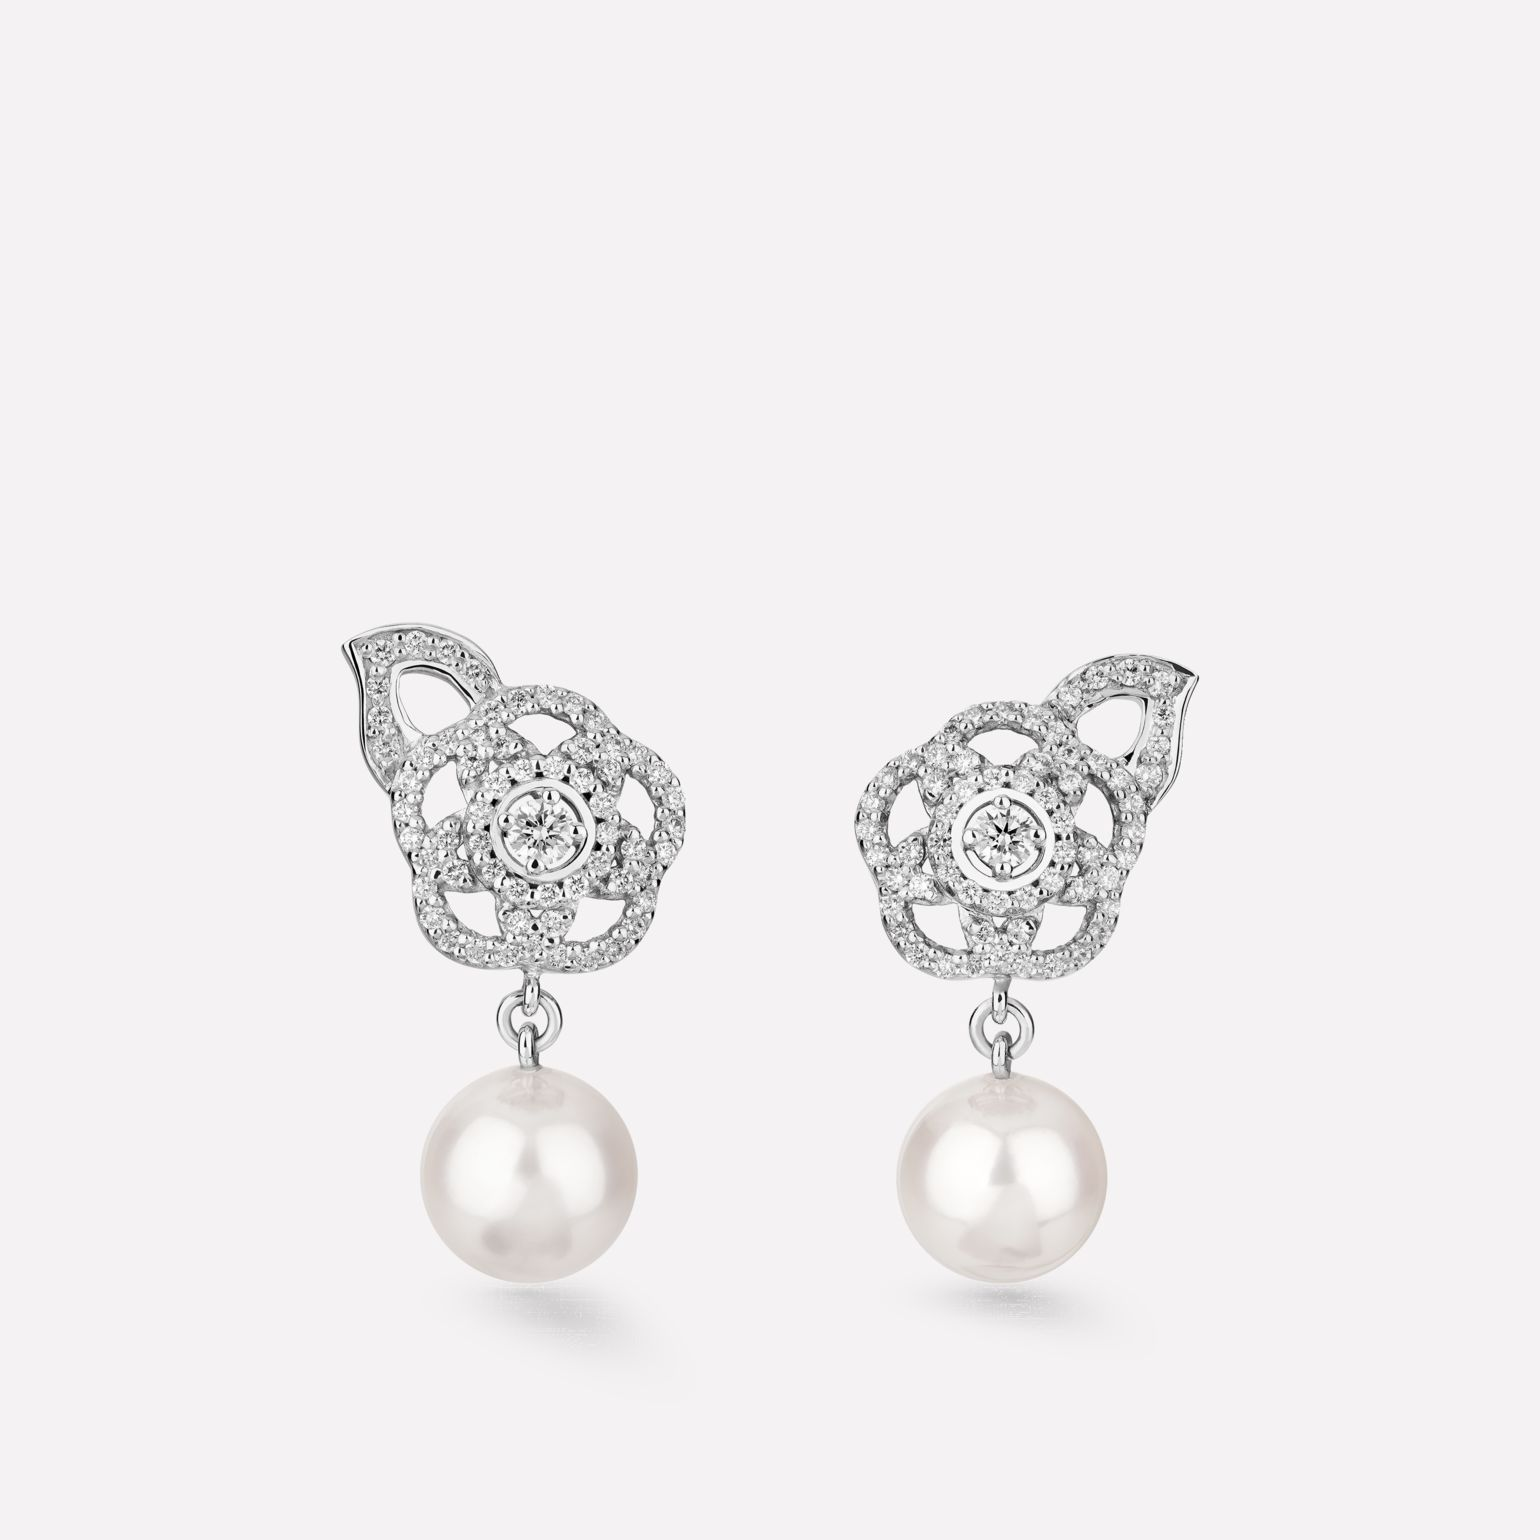 Camélia Earrings Camélia Brodé earrings in 18K white gold, diamonds, central diamond and cultured pearls